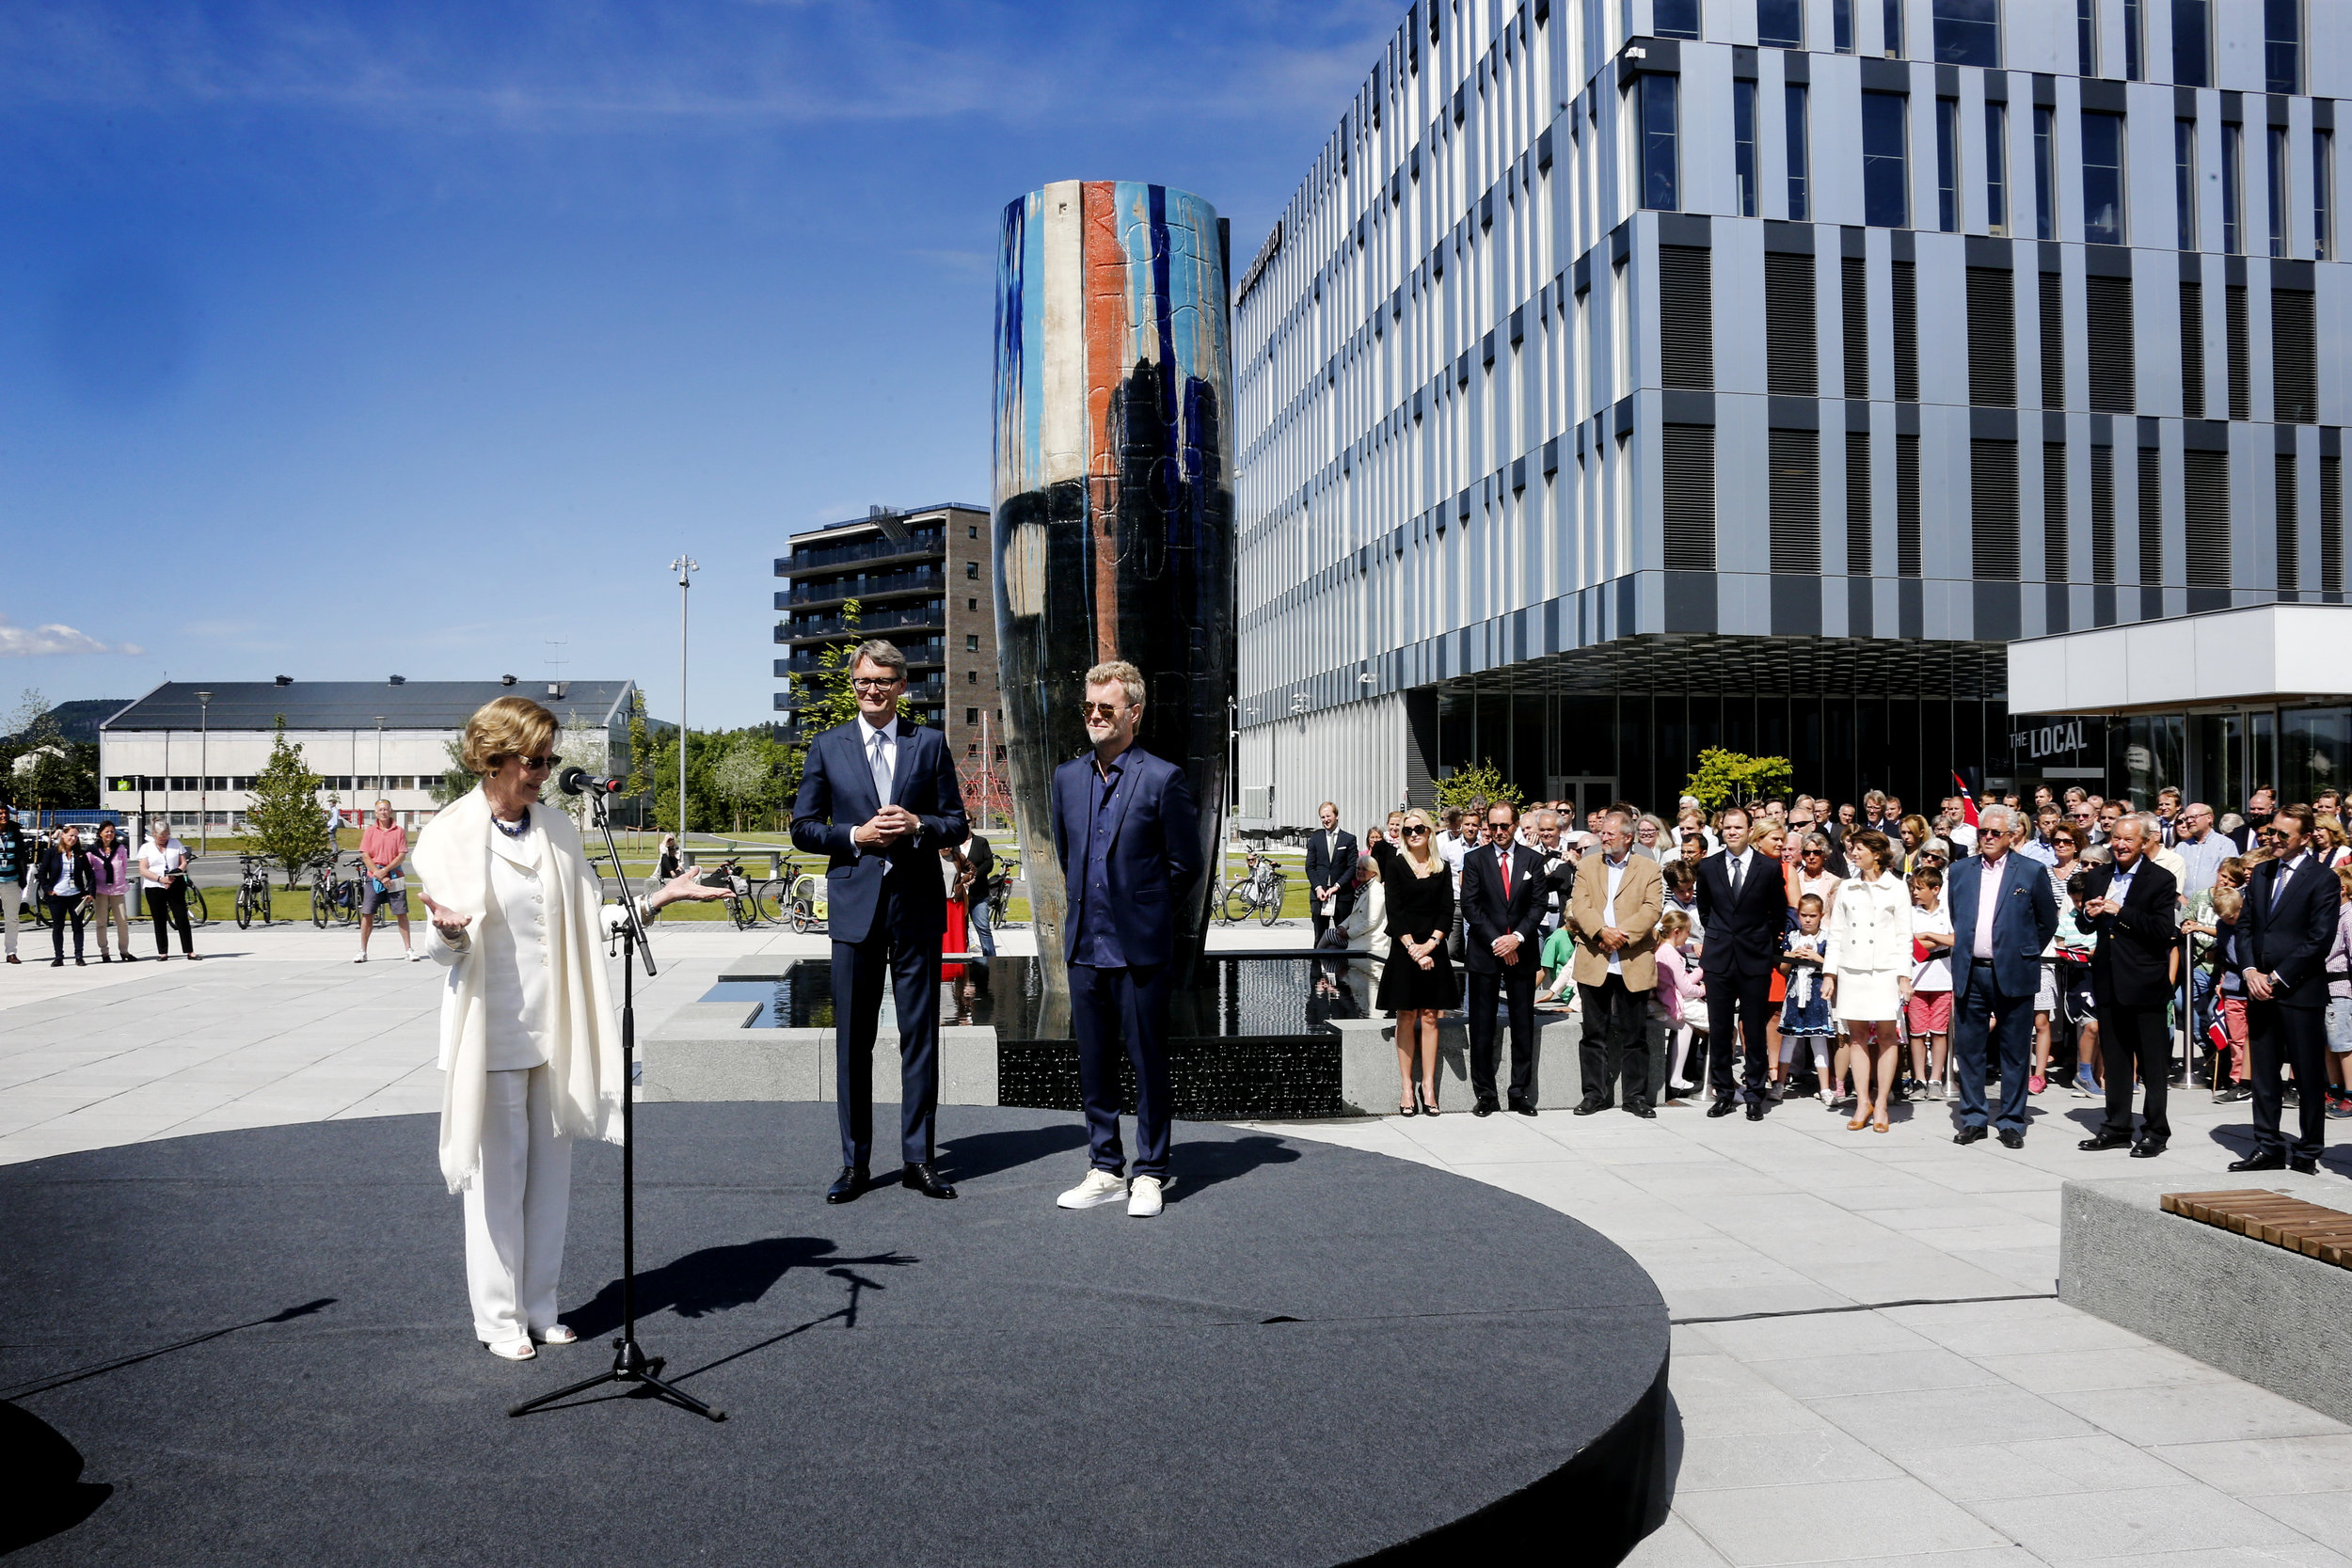 Her Majesty Queen Sonja at the opening of Akerkvartalet at Fornebuporten in 2015, together with Øyvind Eriksen (Aker CEO) and sculptor Magne Furuhomlen